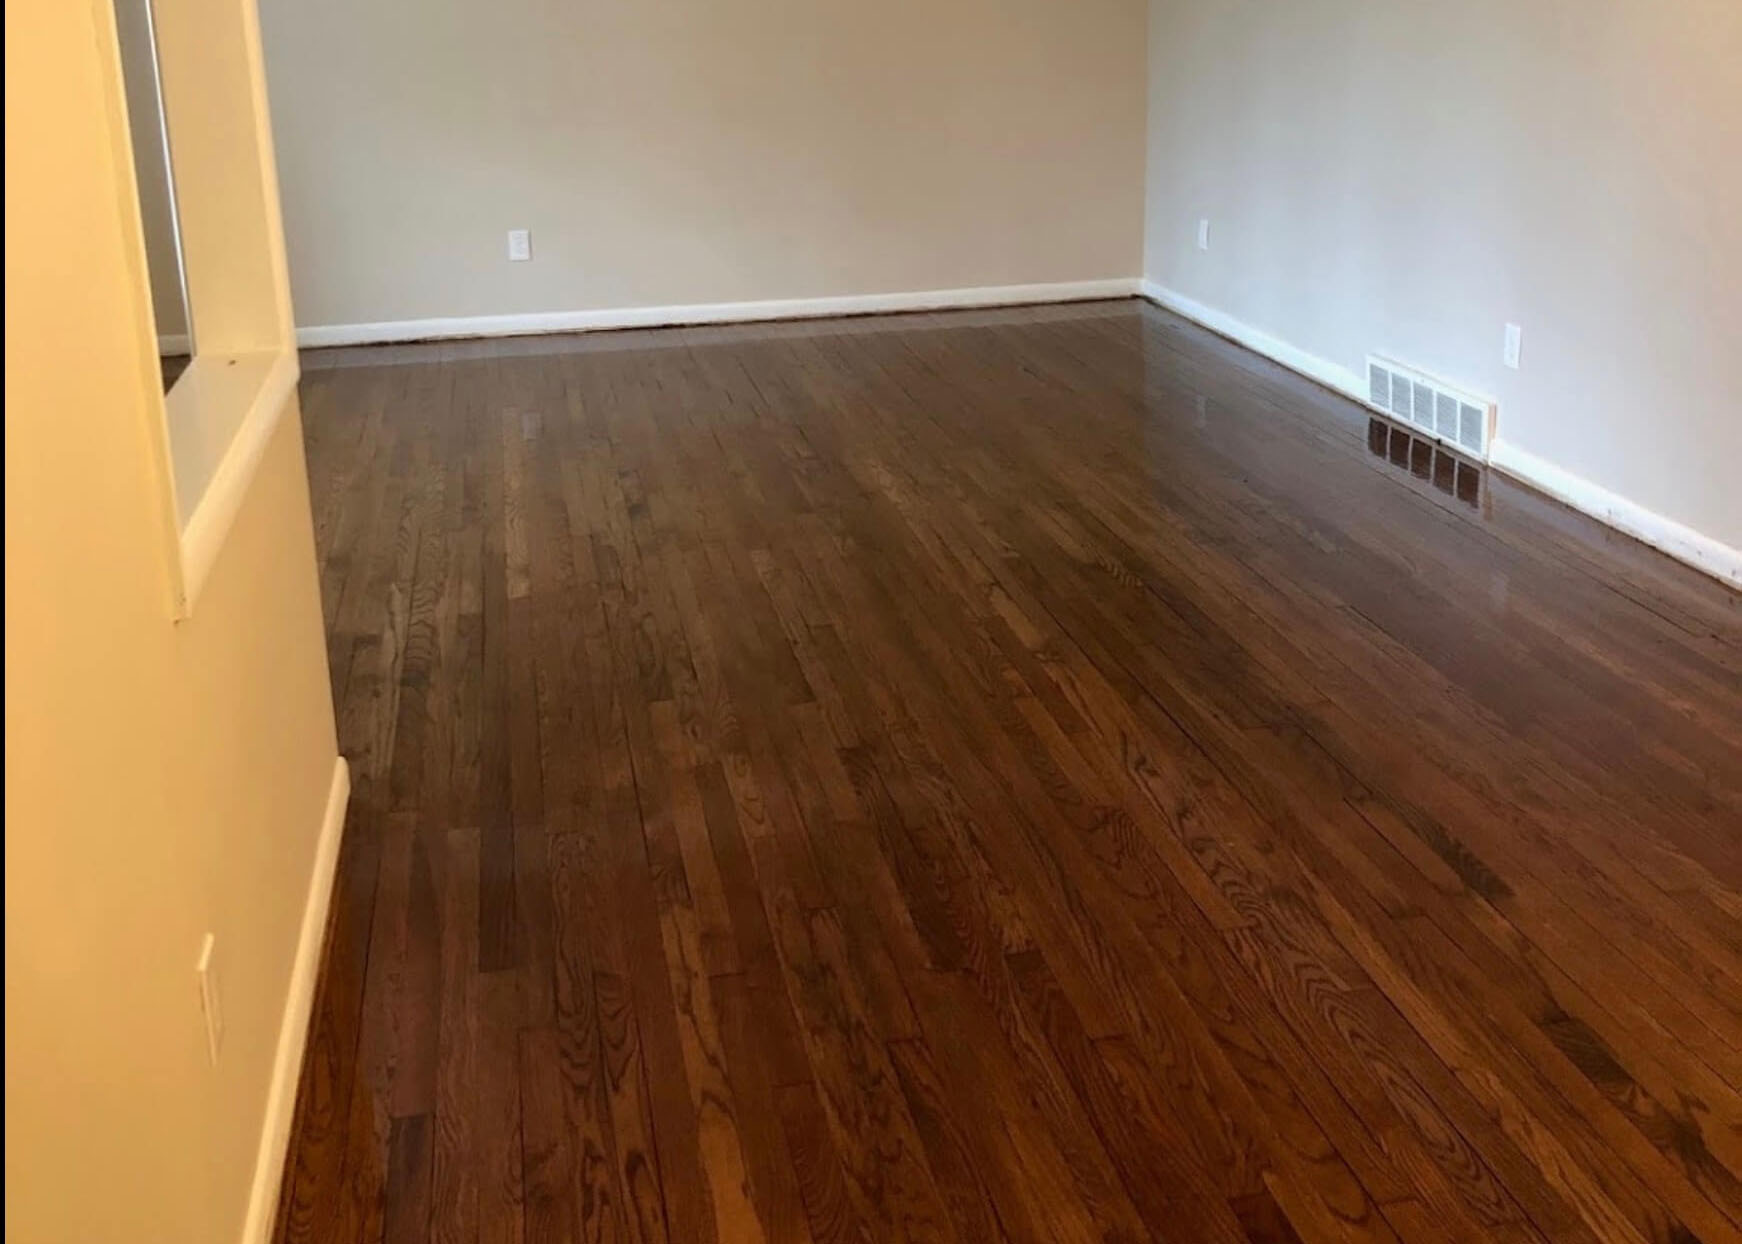 A finished hardwood floor refinishing project